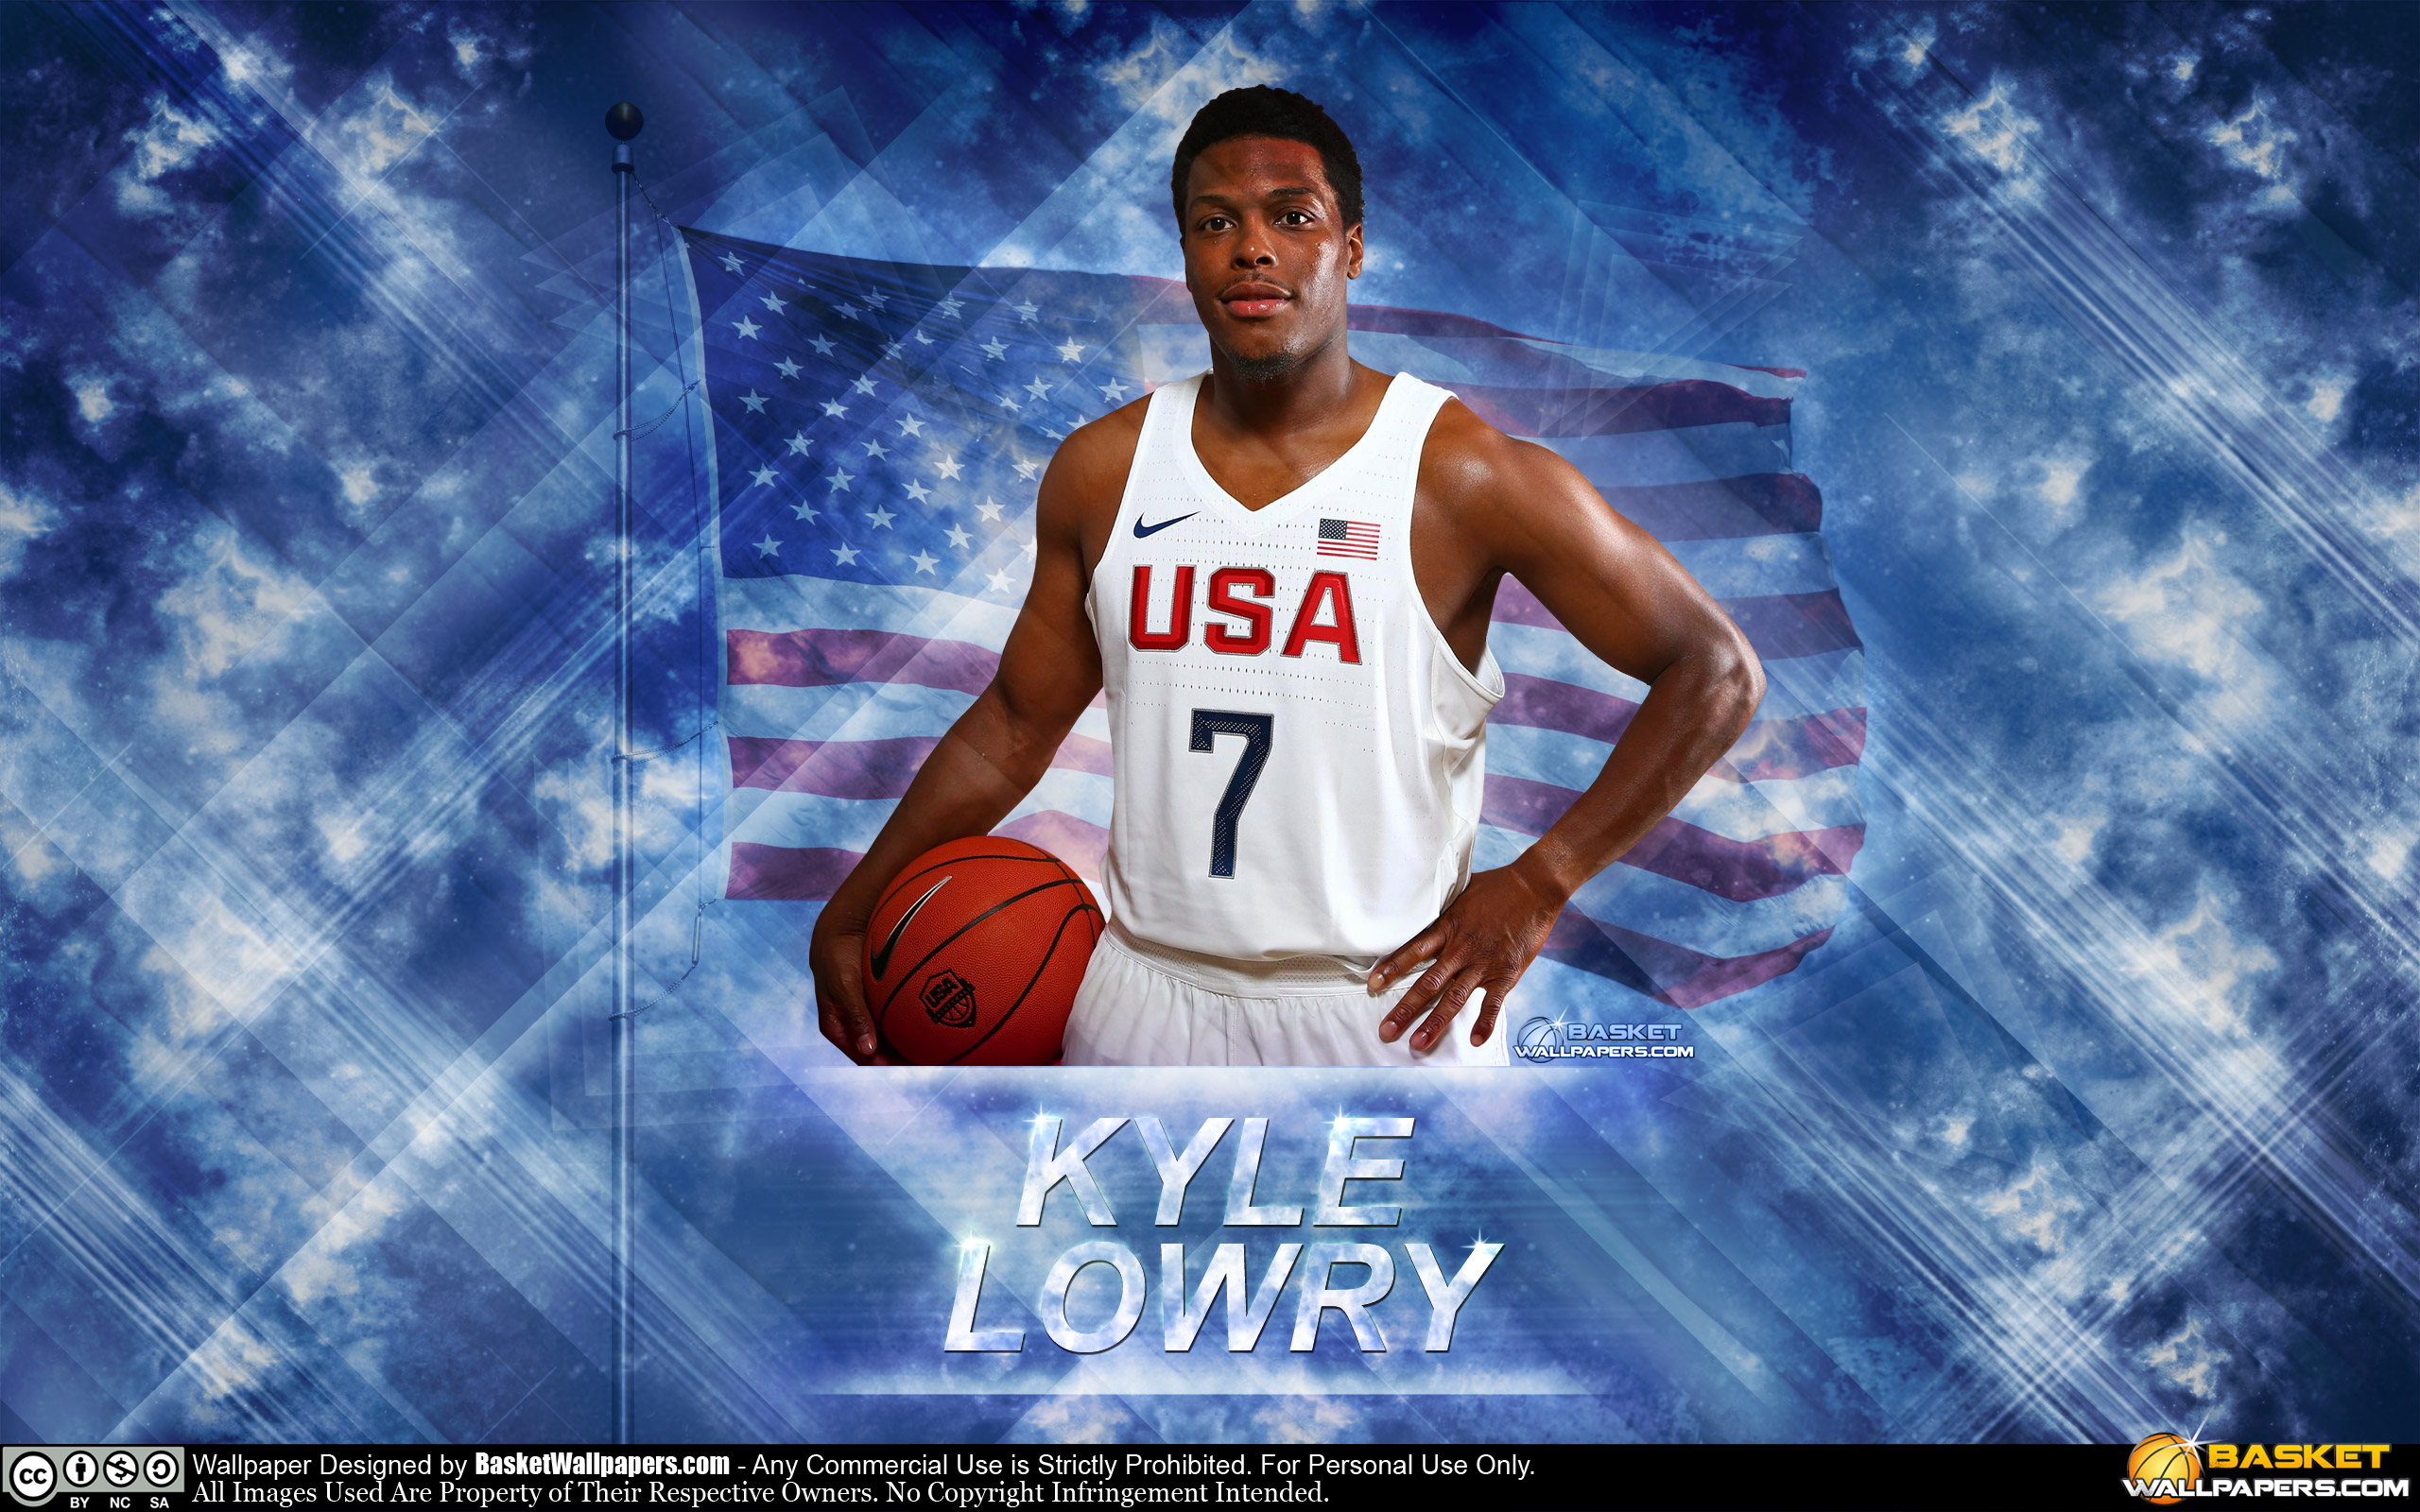 Kyle Lowry USA 2016 Olympics Wallpaper | Basketball Wallpapers at ...